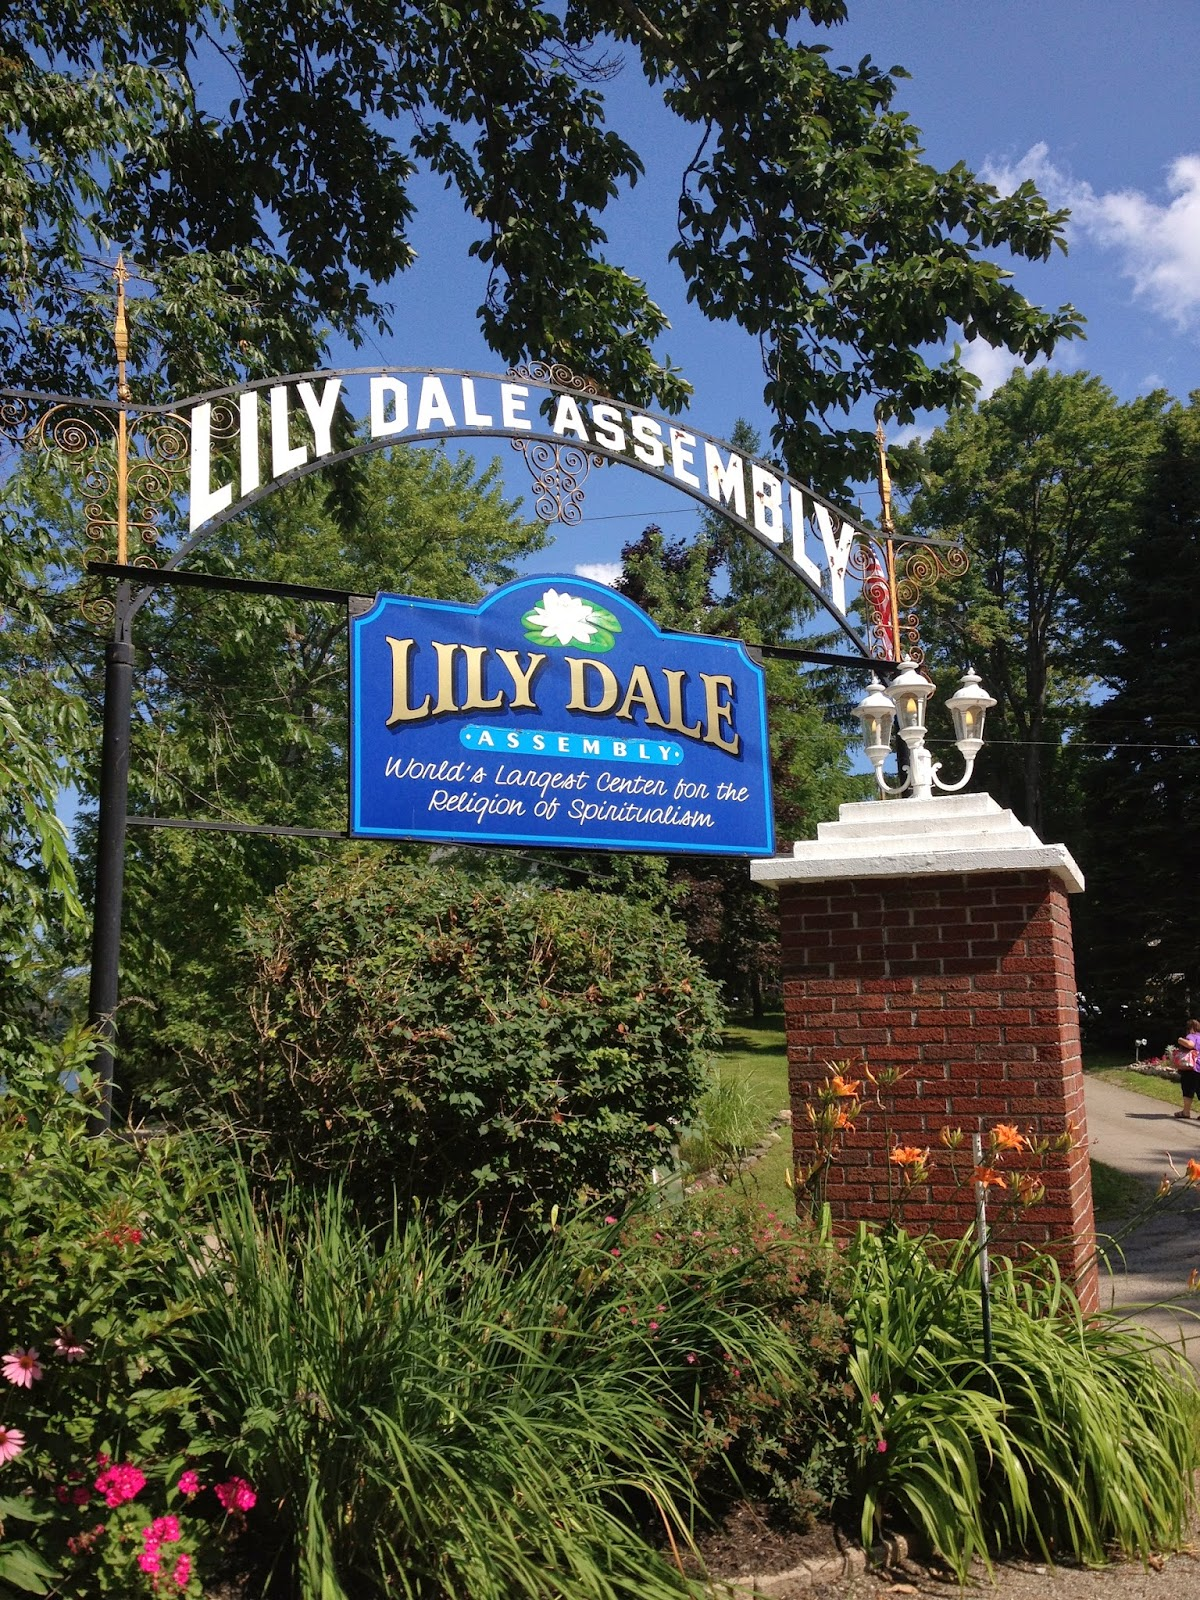 Anyway, Allu0027s Well That Ends Well And We Finally Made It. Welcome To Lily  Dale.